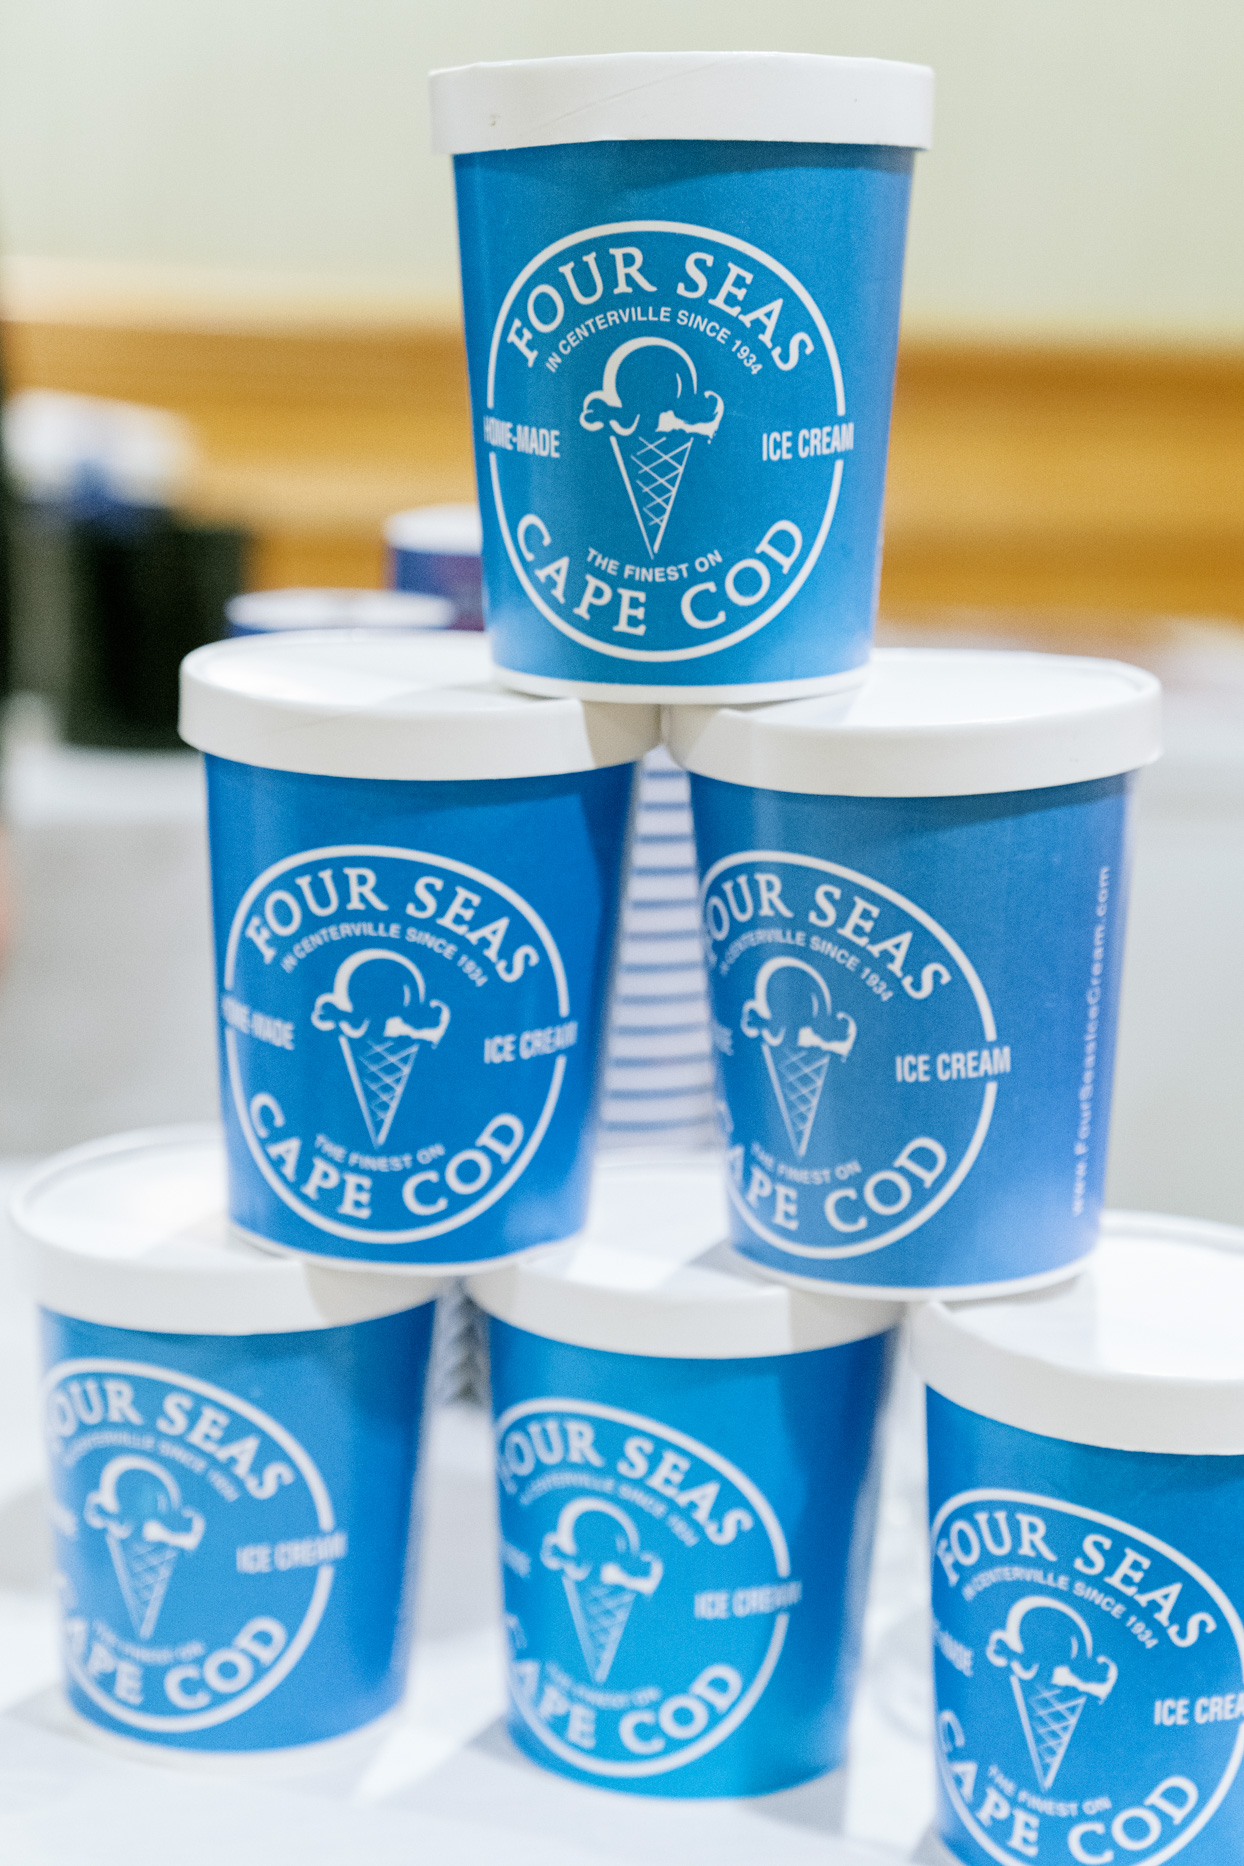 four seas cape cod ice cream in blue cartons